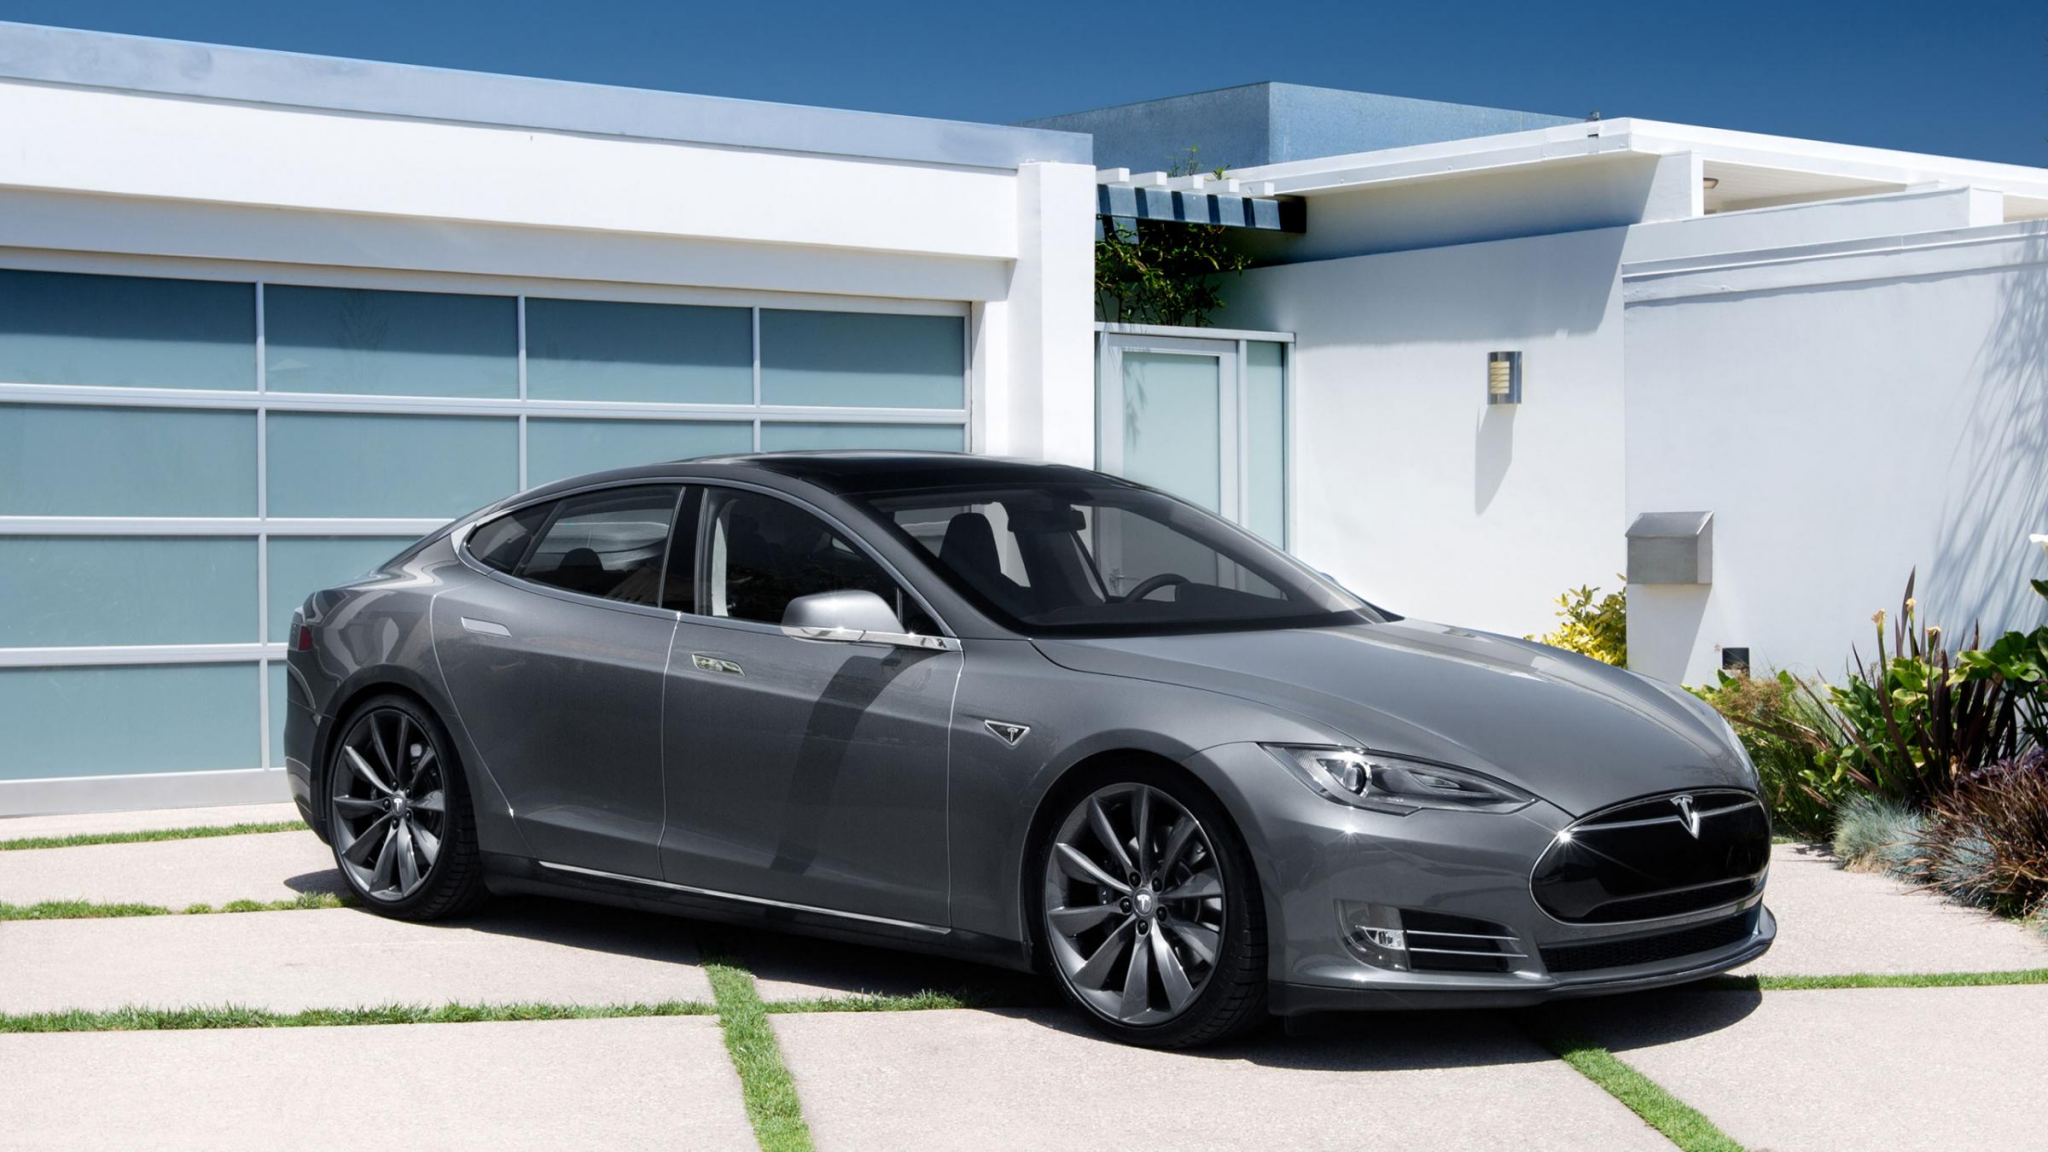 Tesla Vehicles Will Be 90 American Made After Gigafactory The News Wheel